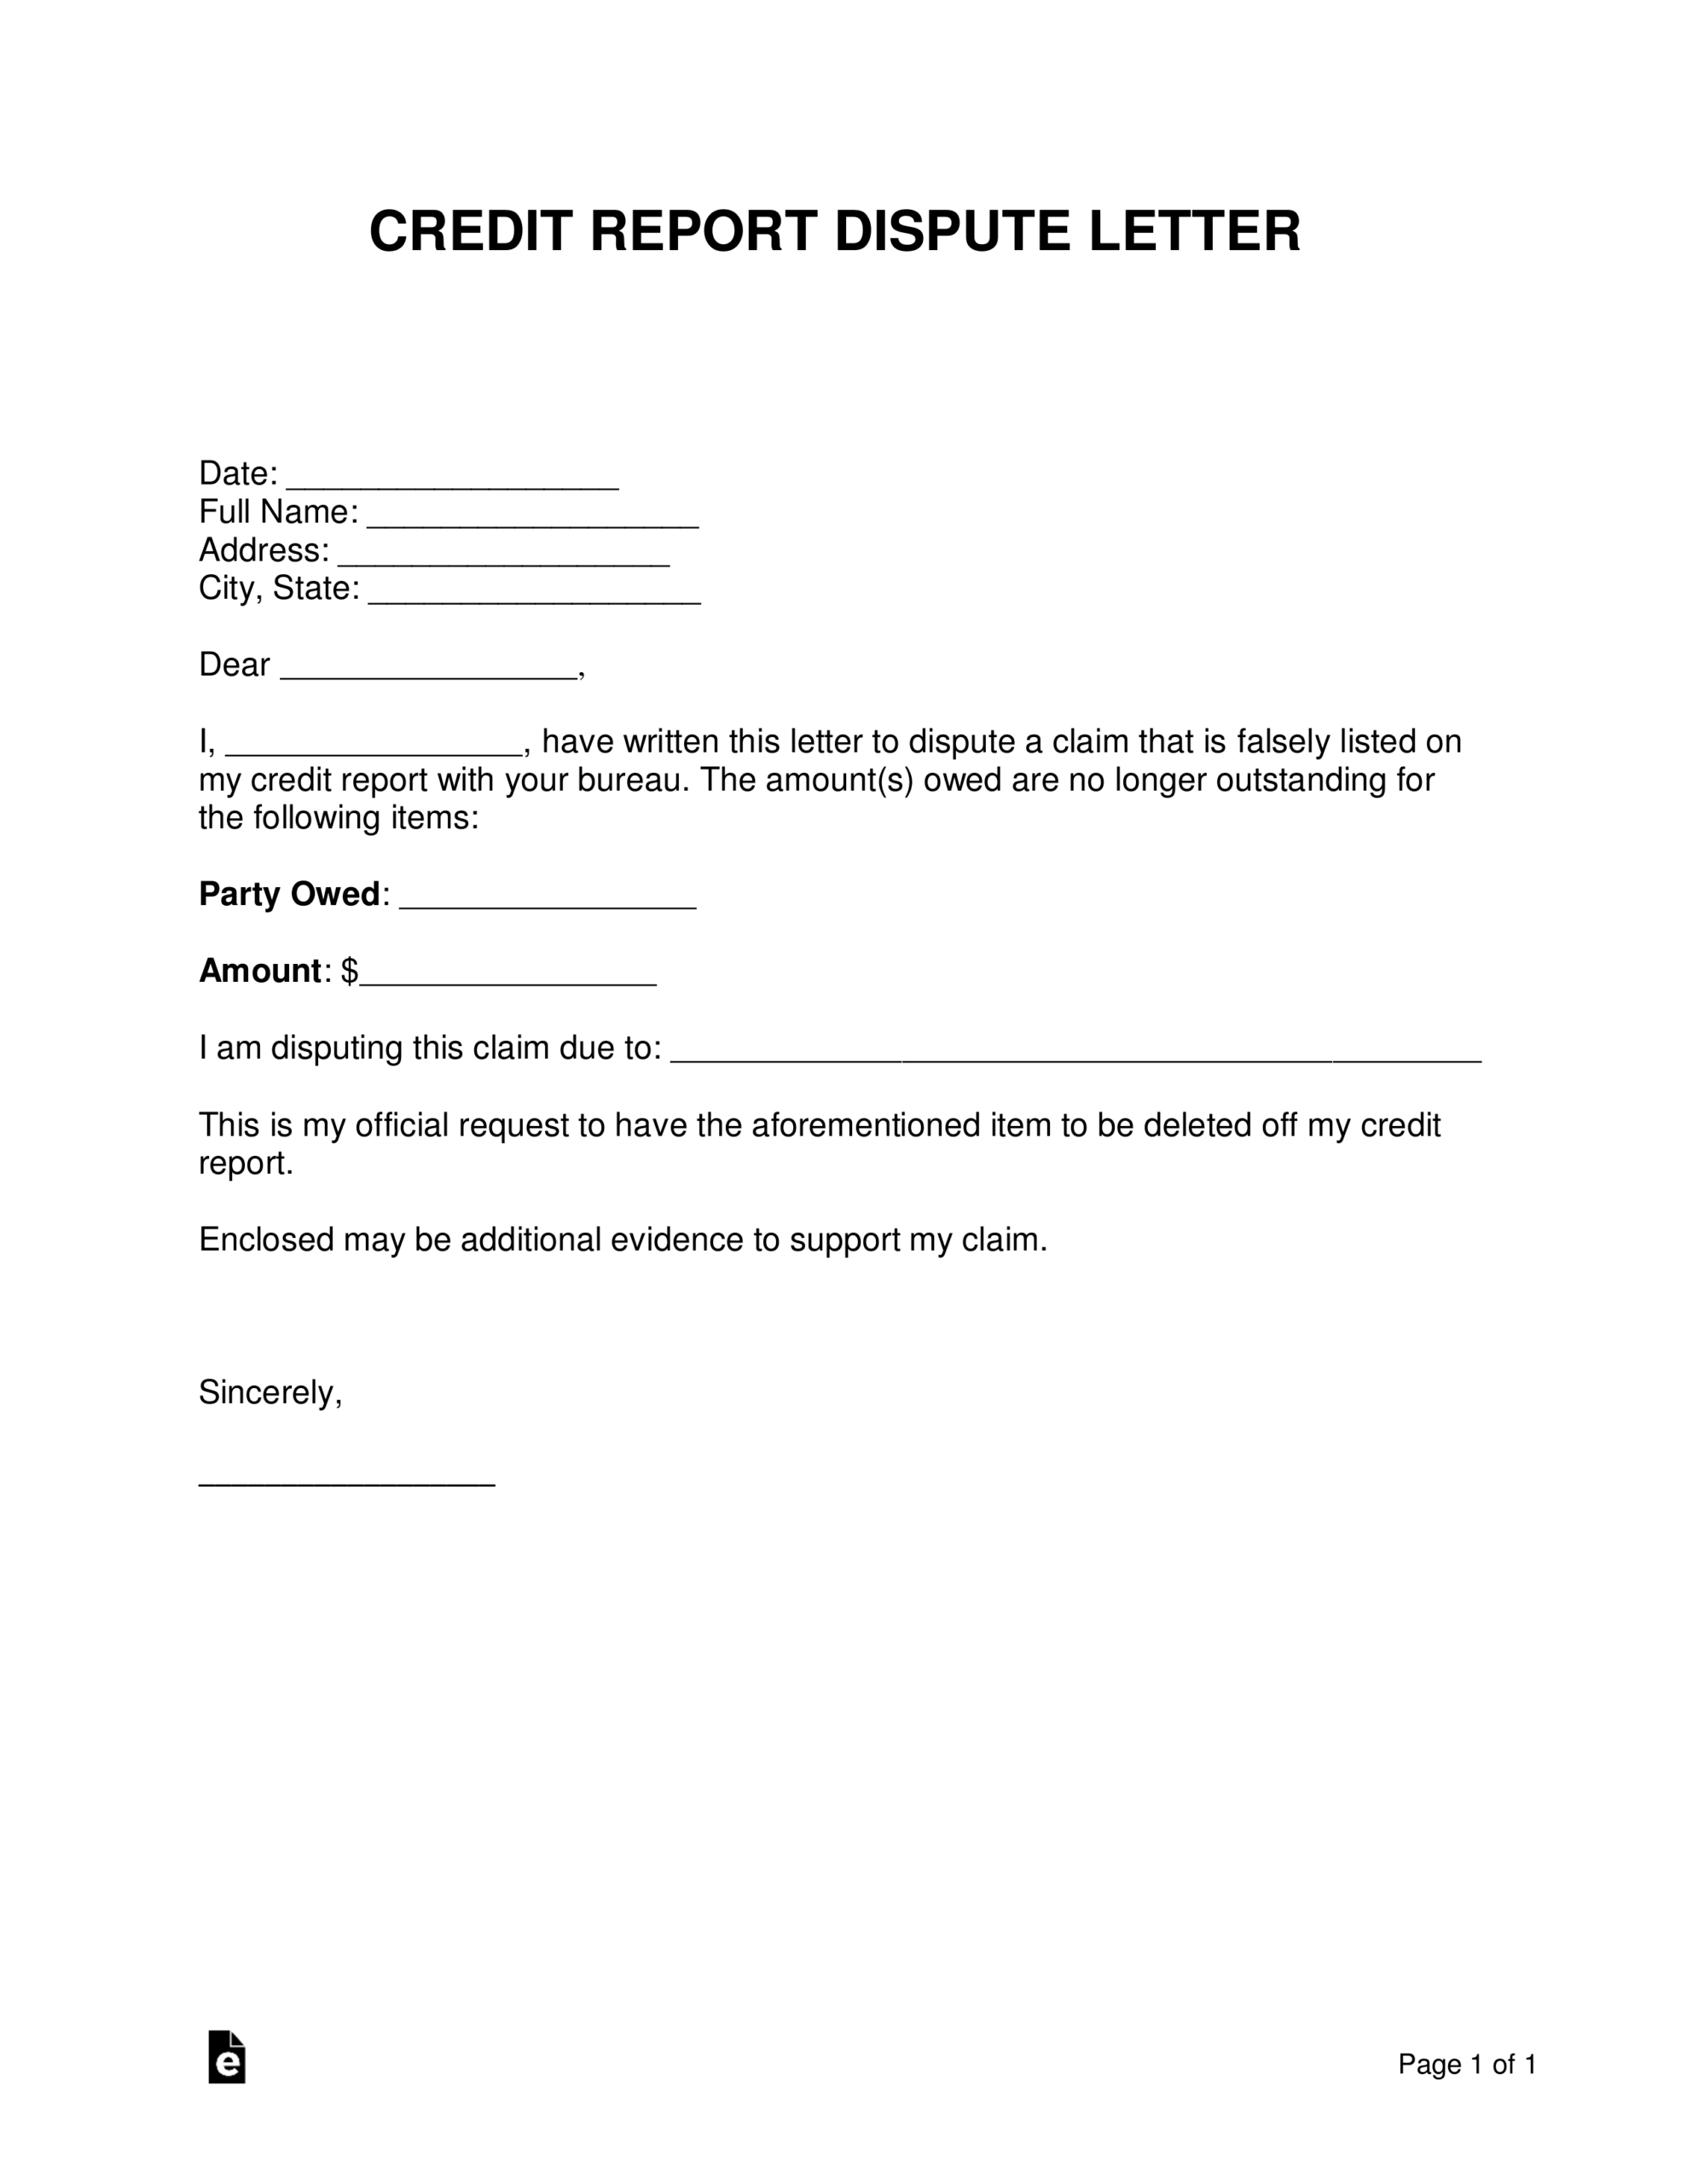 Free Credit Report Dispute Letter Template - Sample - Word Inside Credit Report Dispute Letter Template